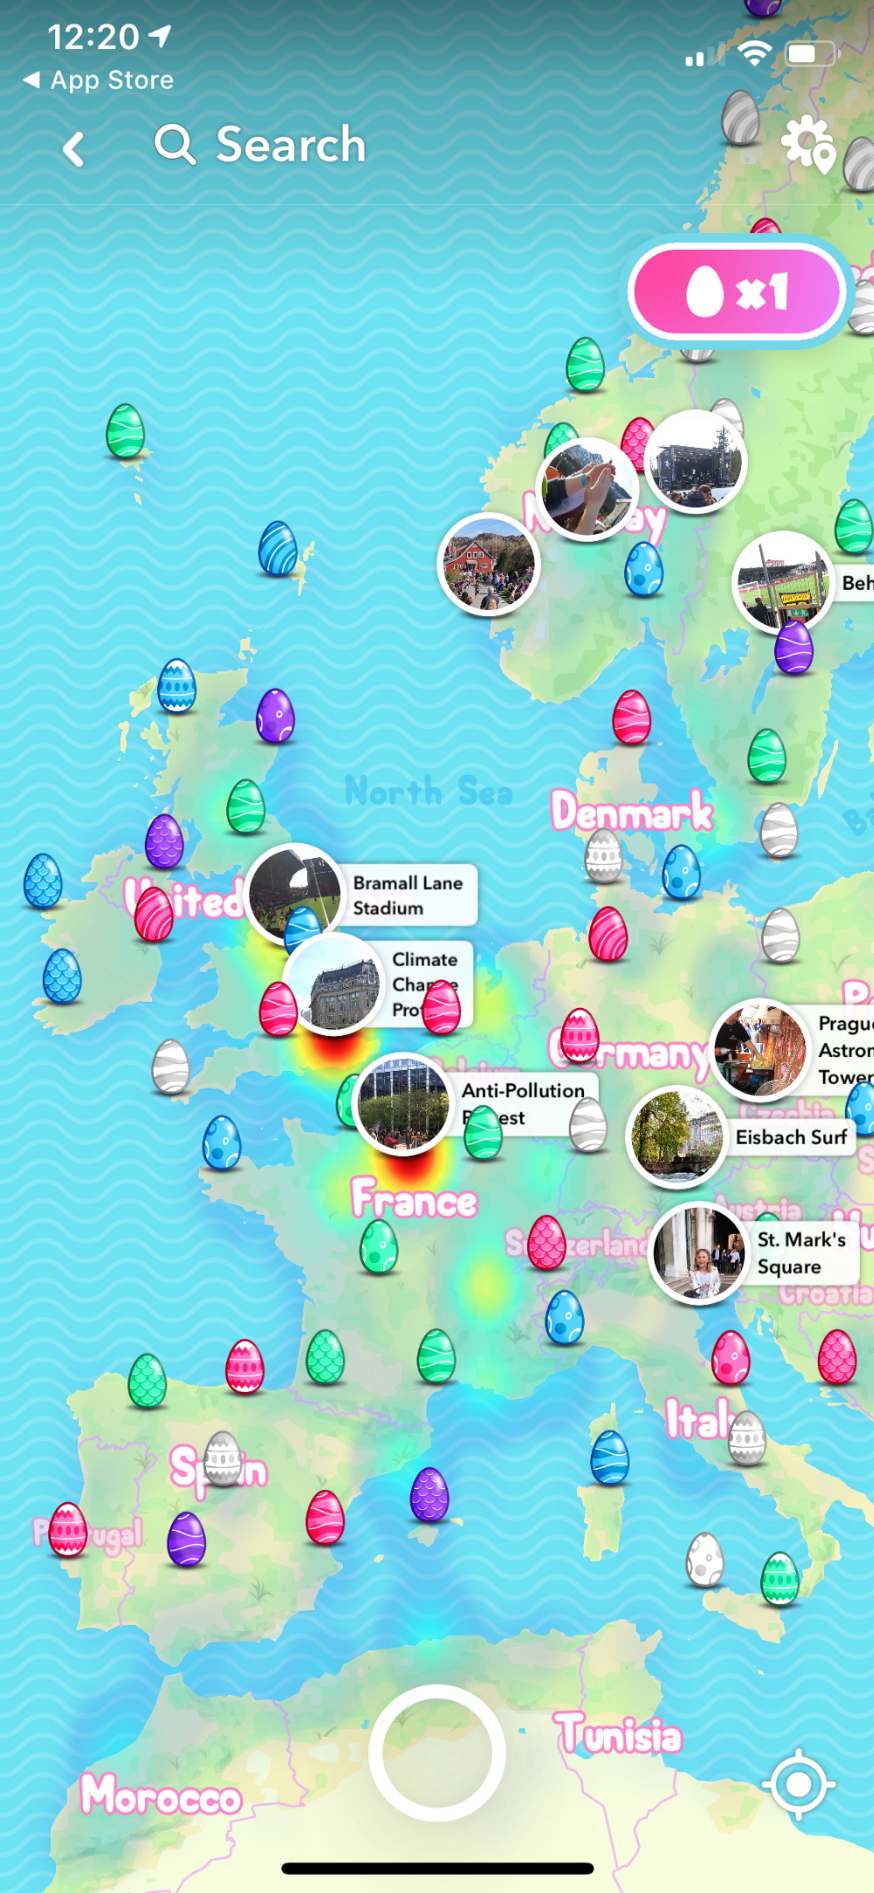 Snapchat's 2019 Egg Hunt is on - Points of interest